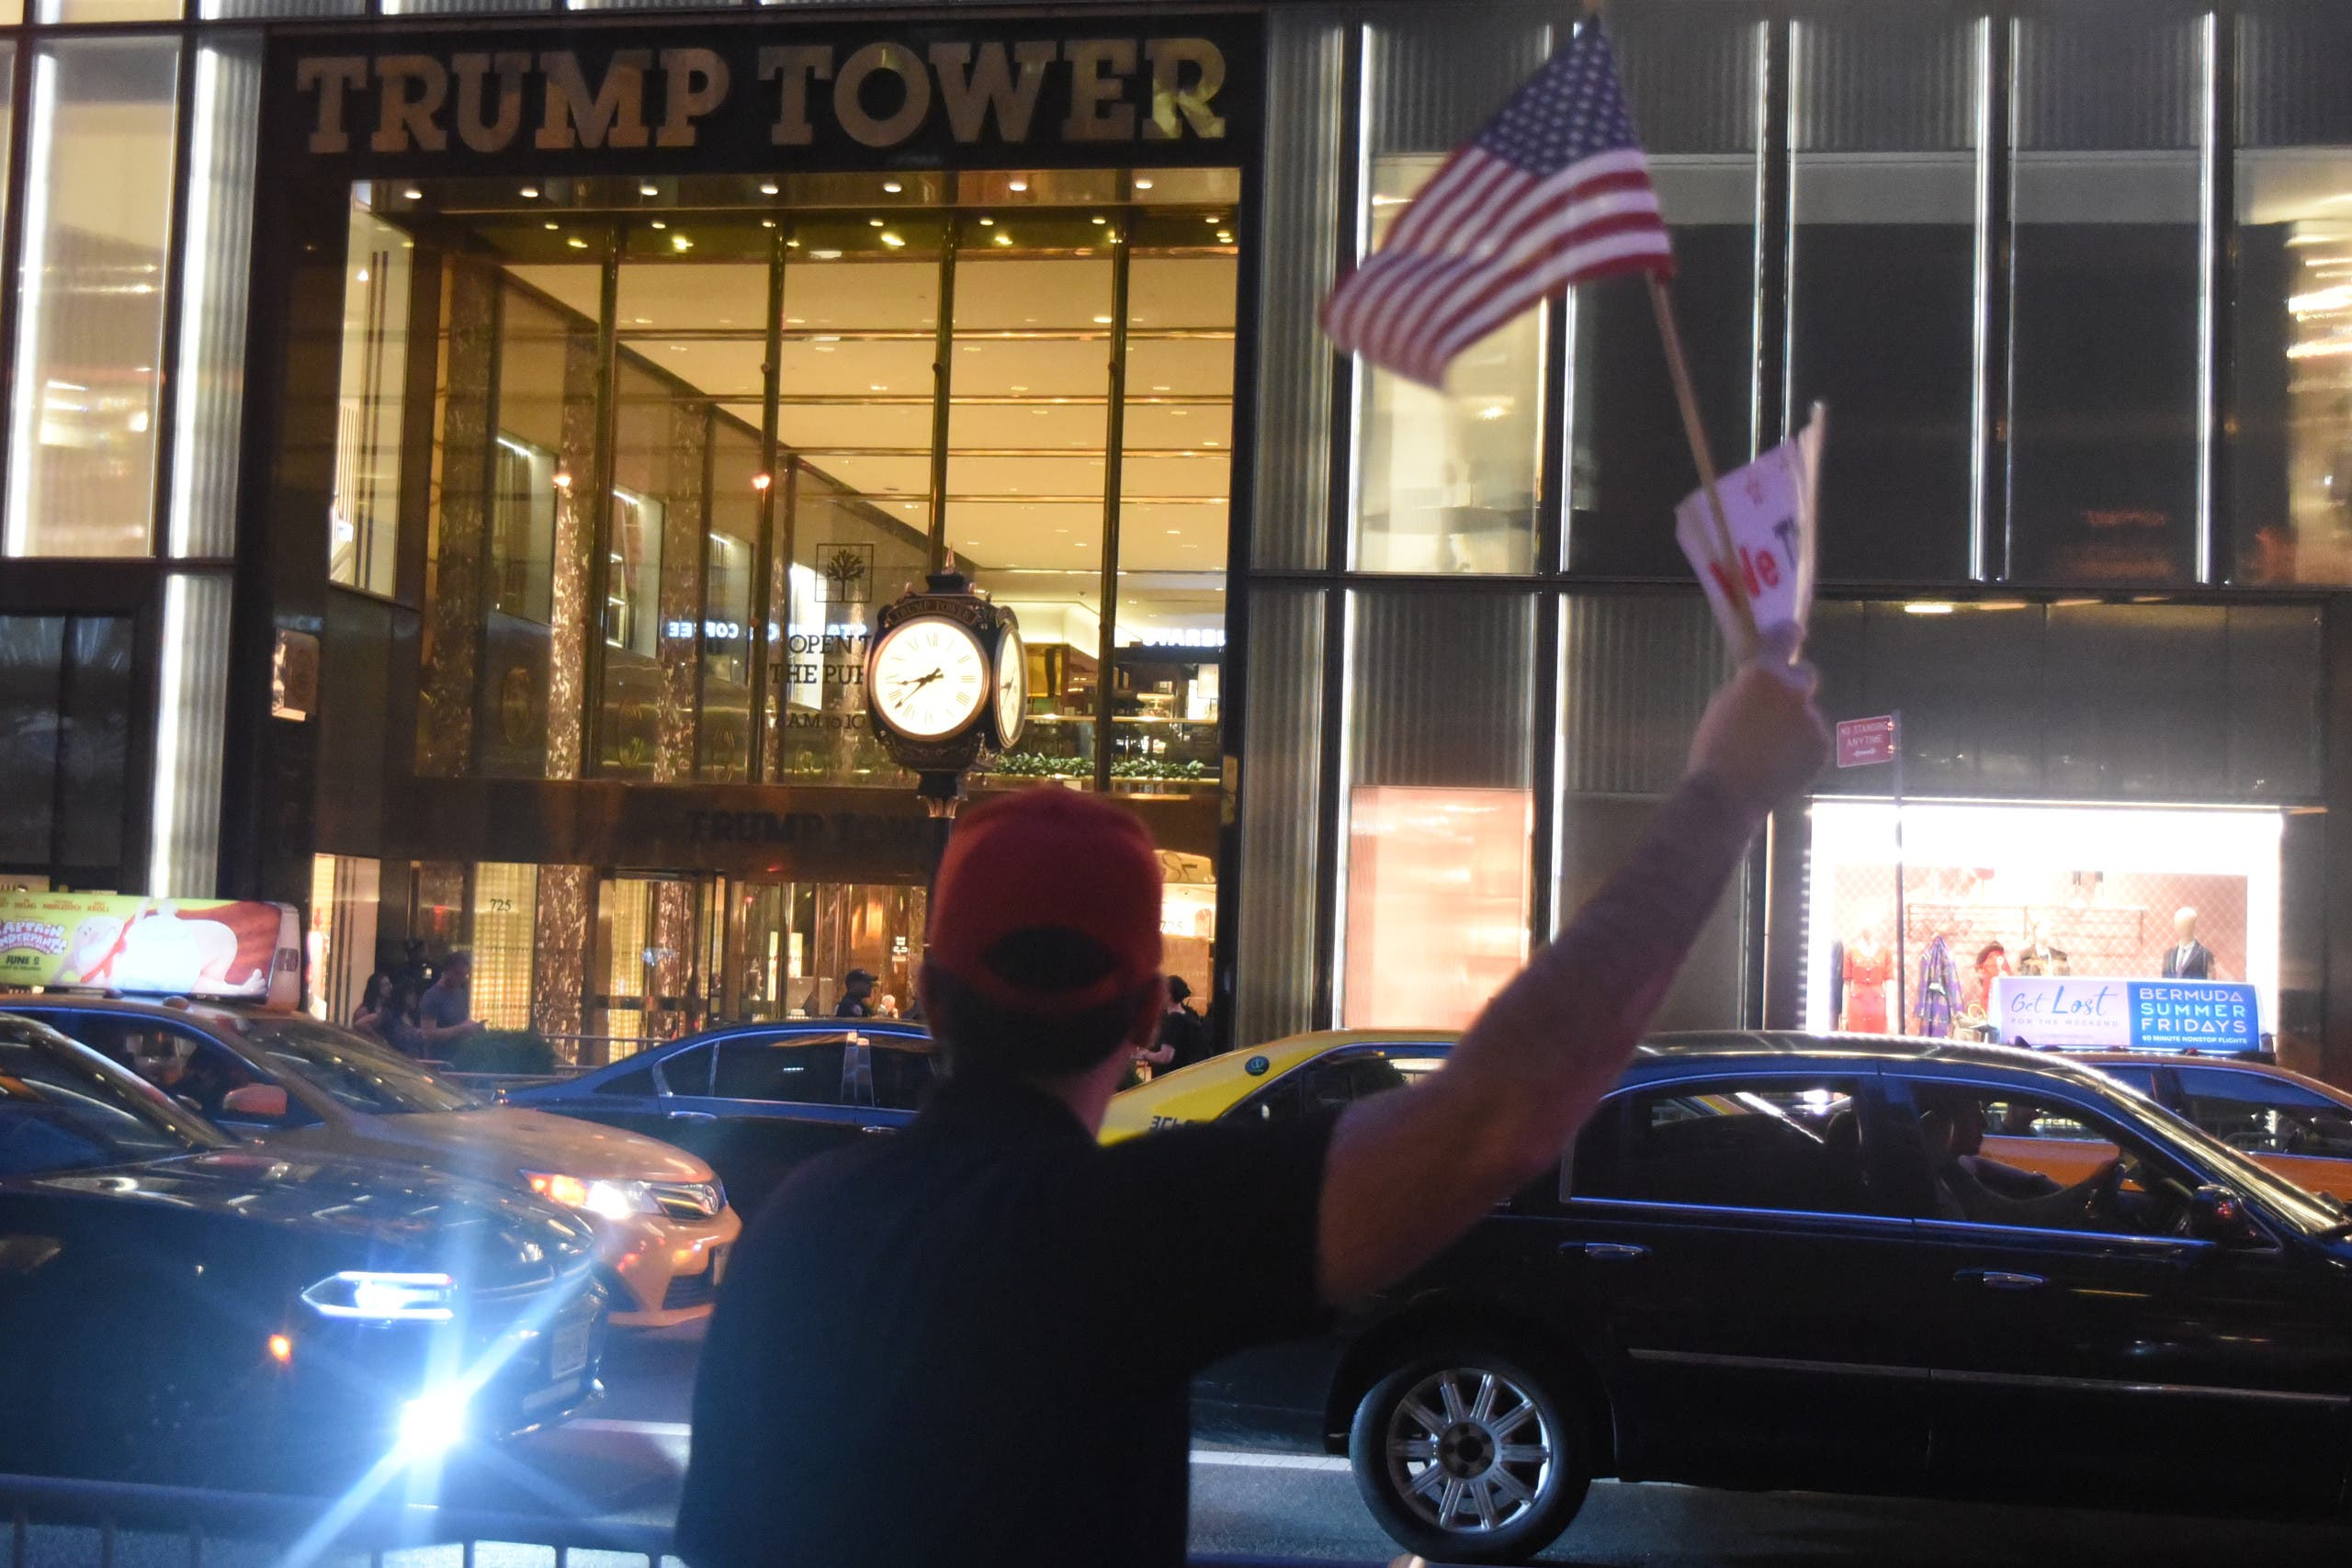 Trump2: A pro-Trump counter-protestor holds the American flag in front of Trump Tower.